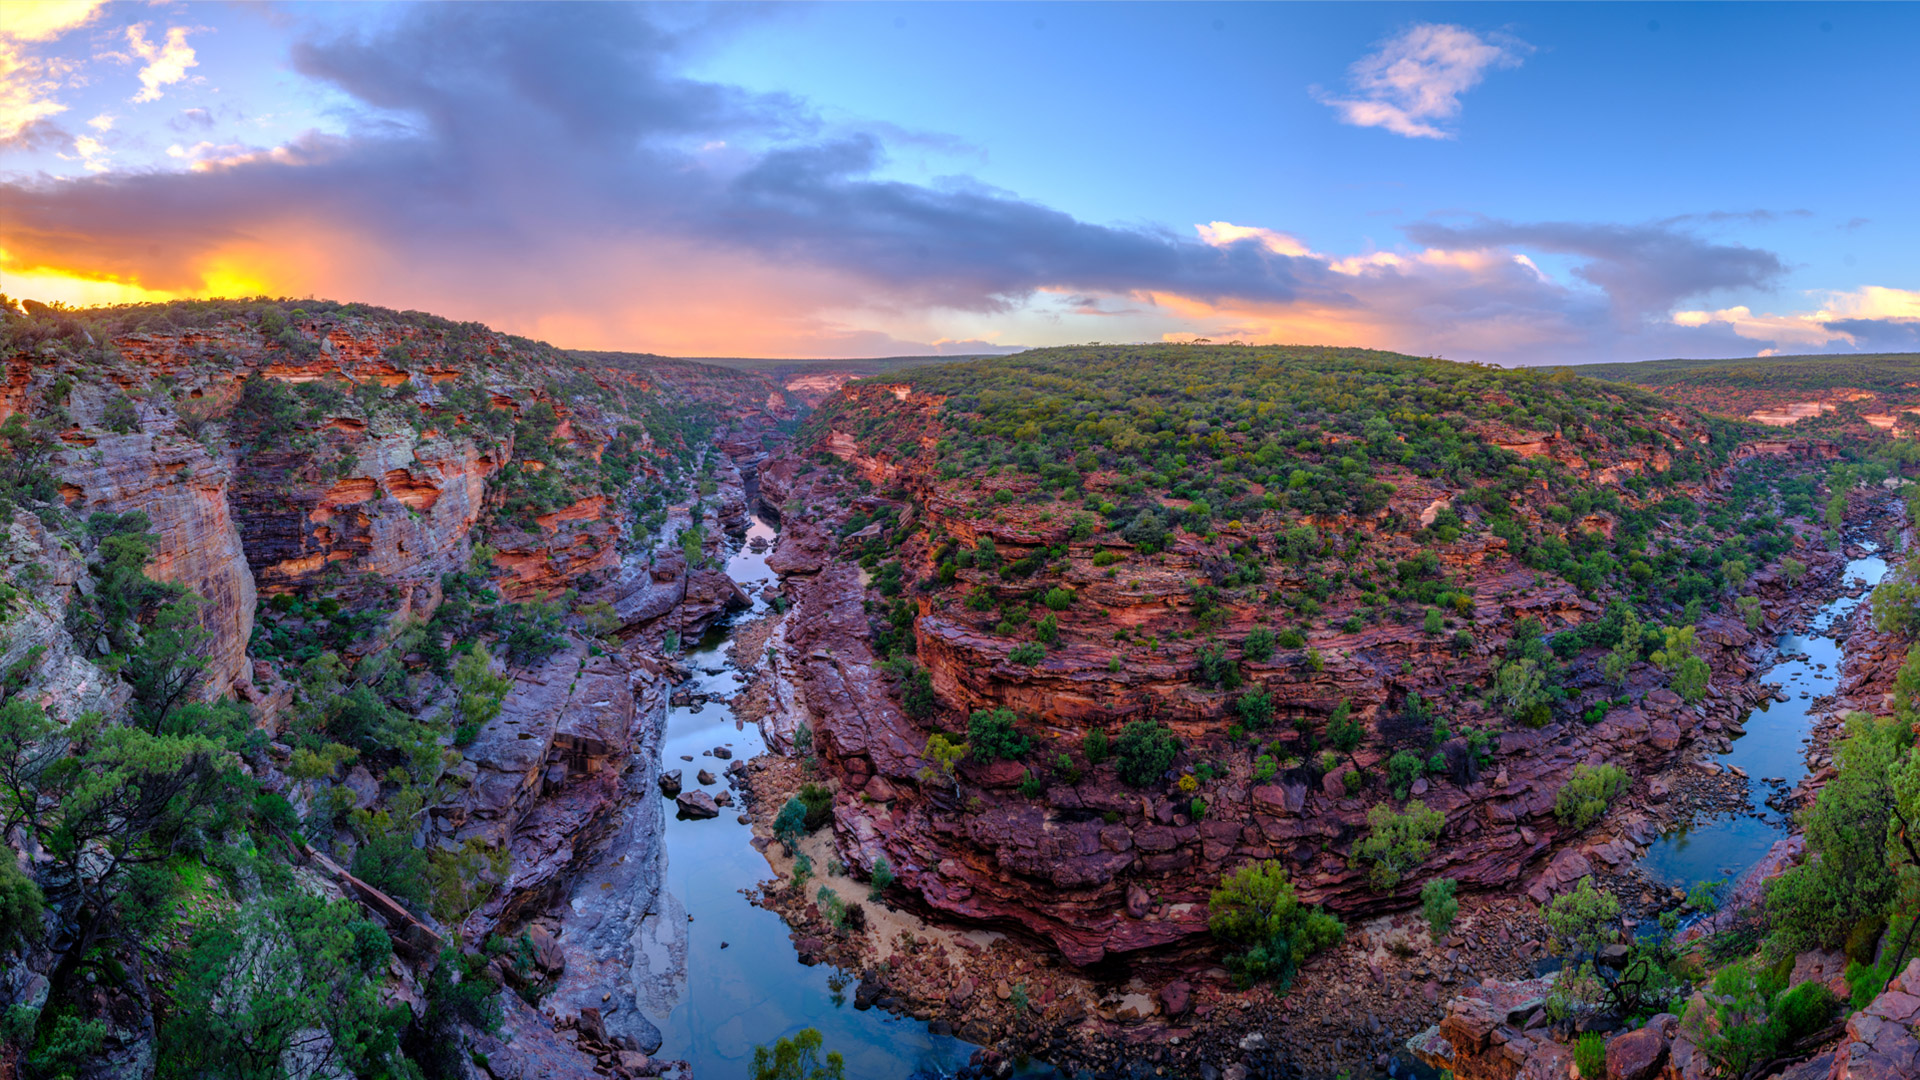 Rivers running through gorges in Kalbarri National Park